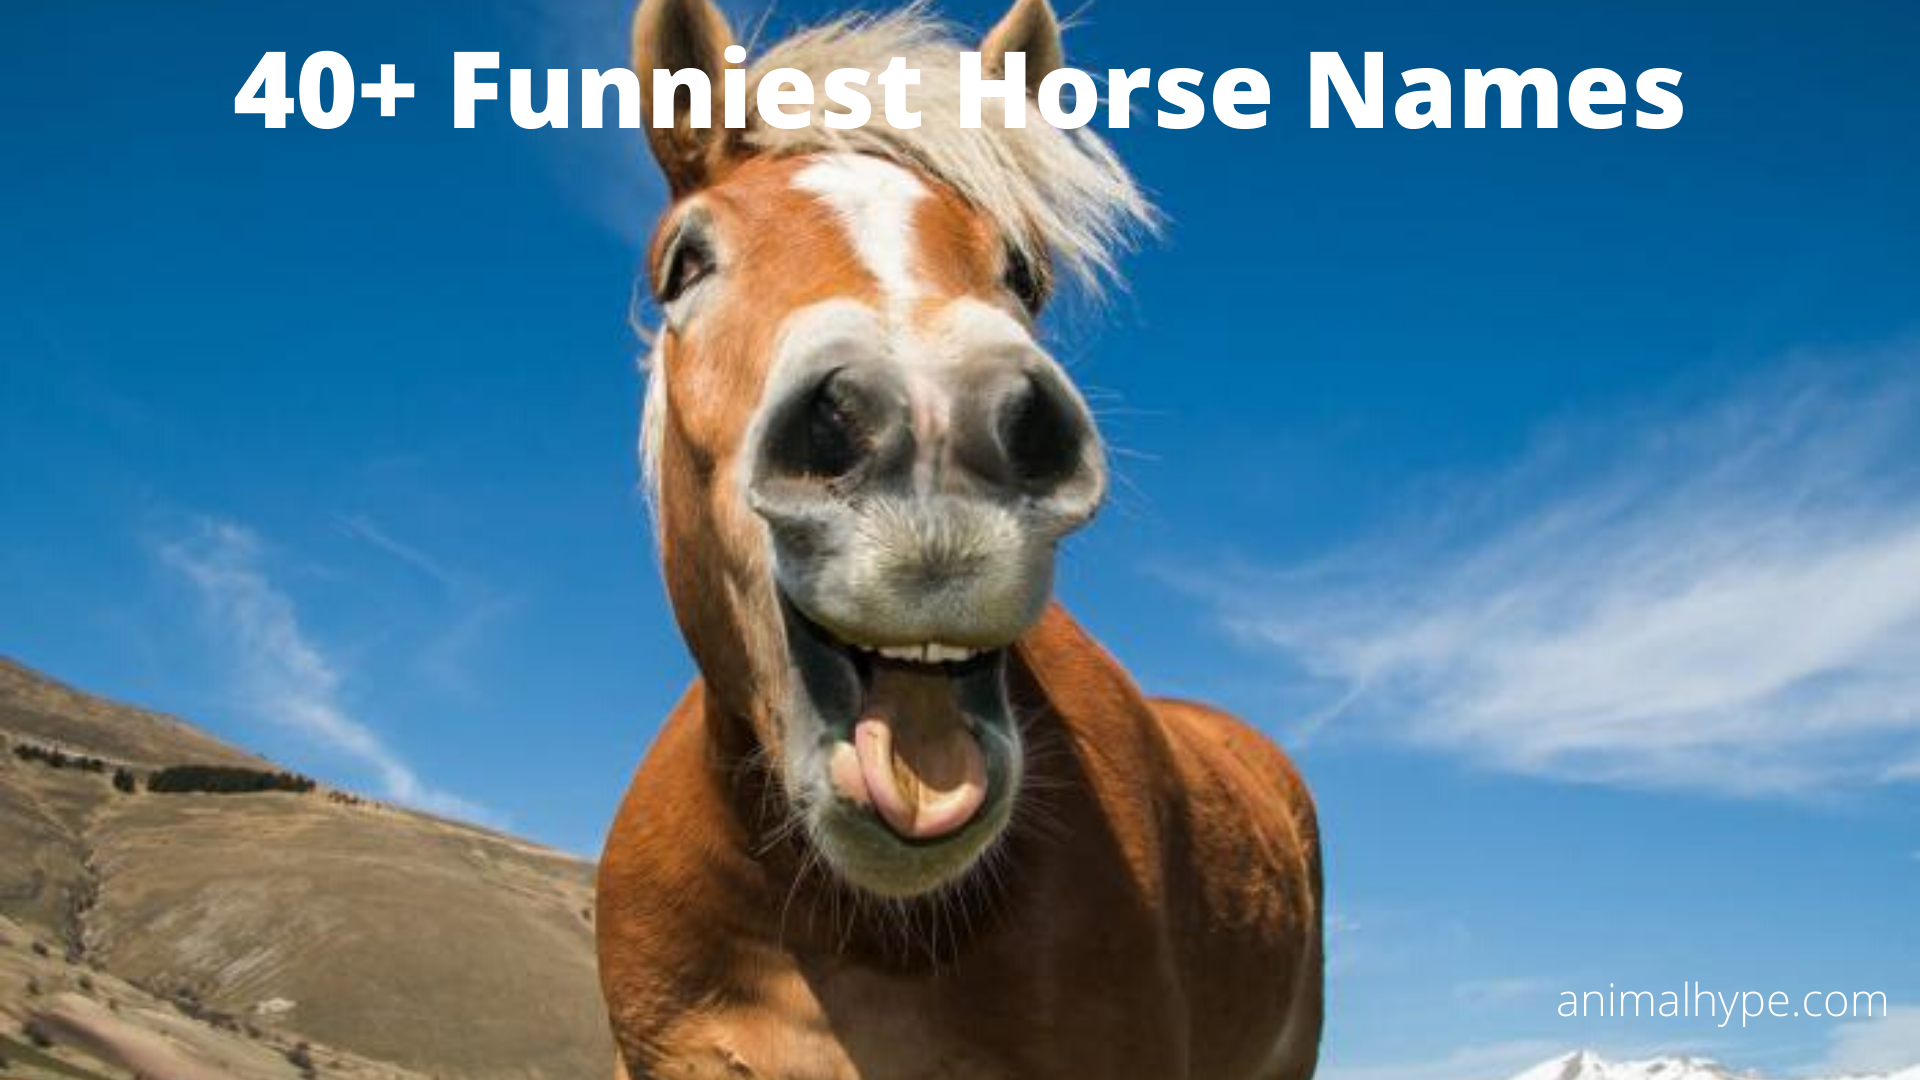 Funny Horse Names